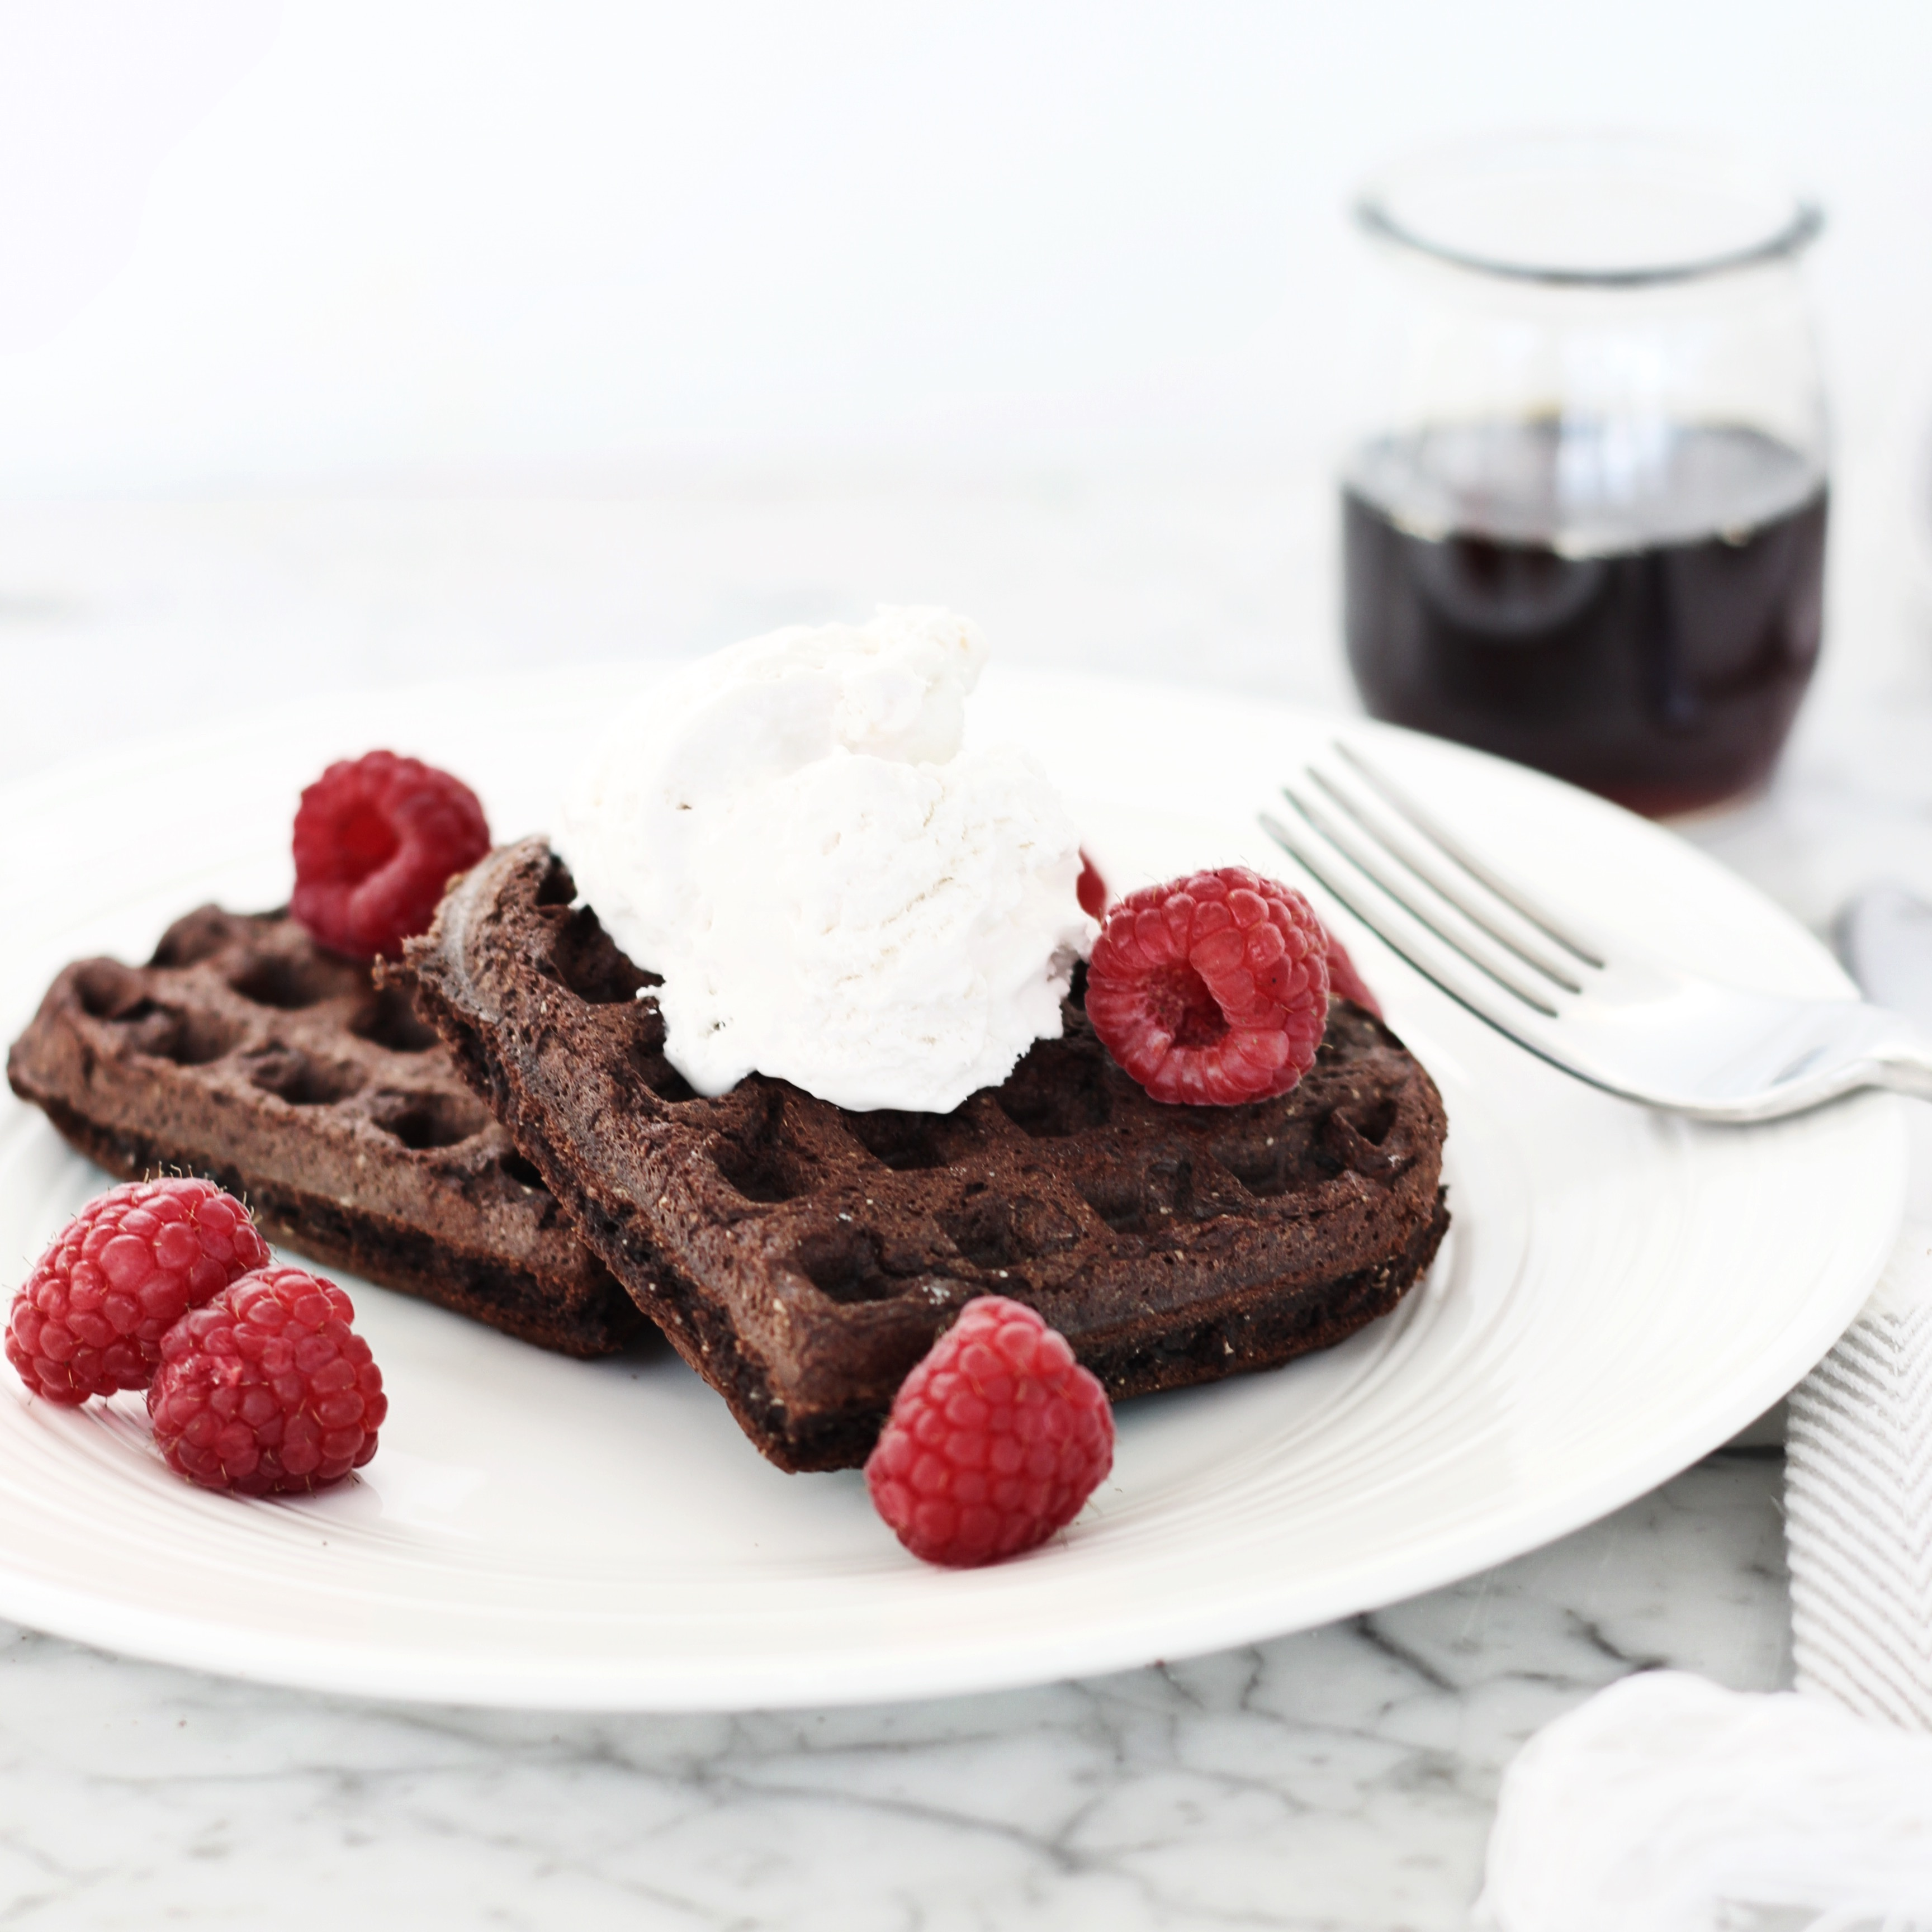 Chocolate Vegan Waffles on white plate with fresh raspberries